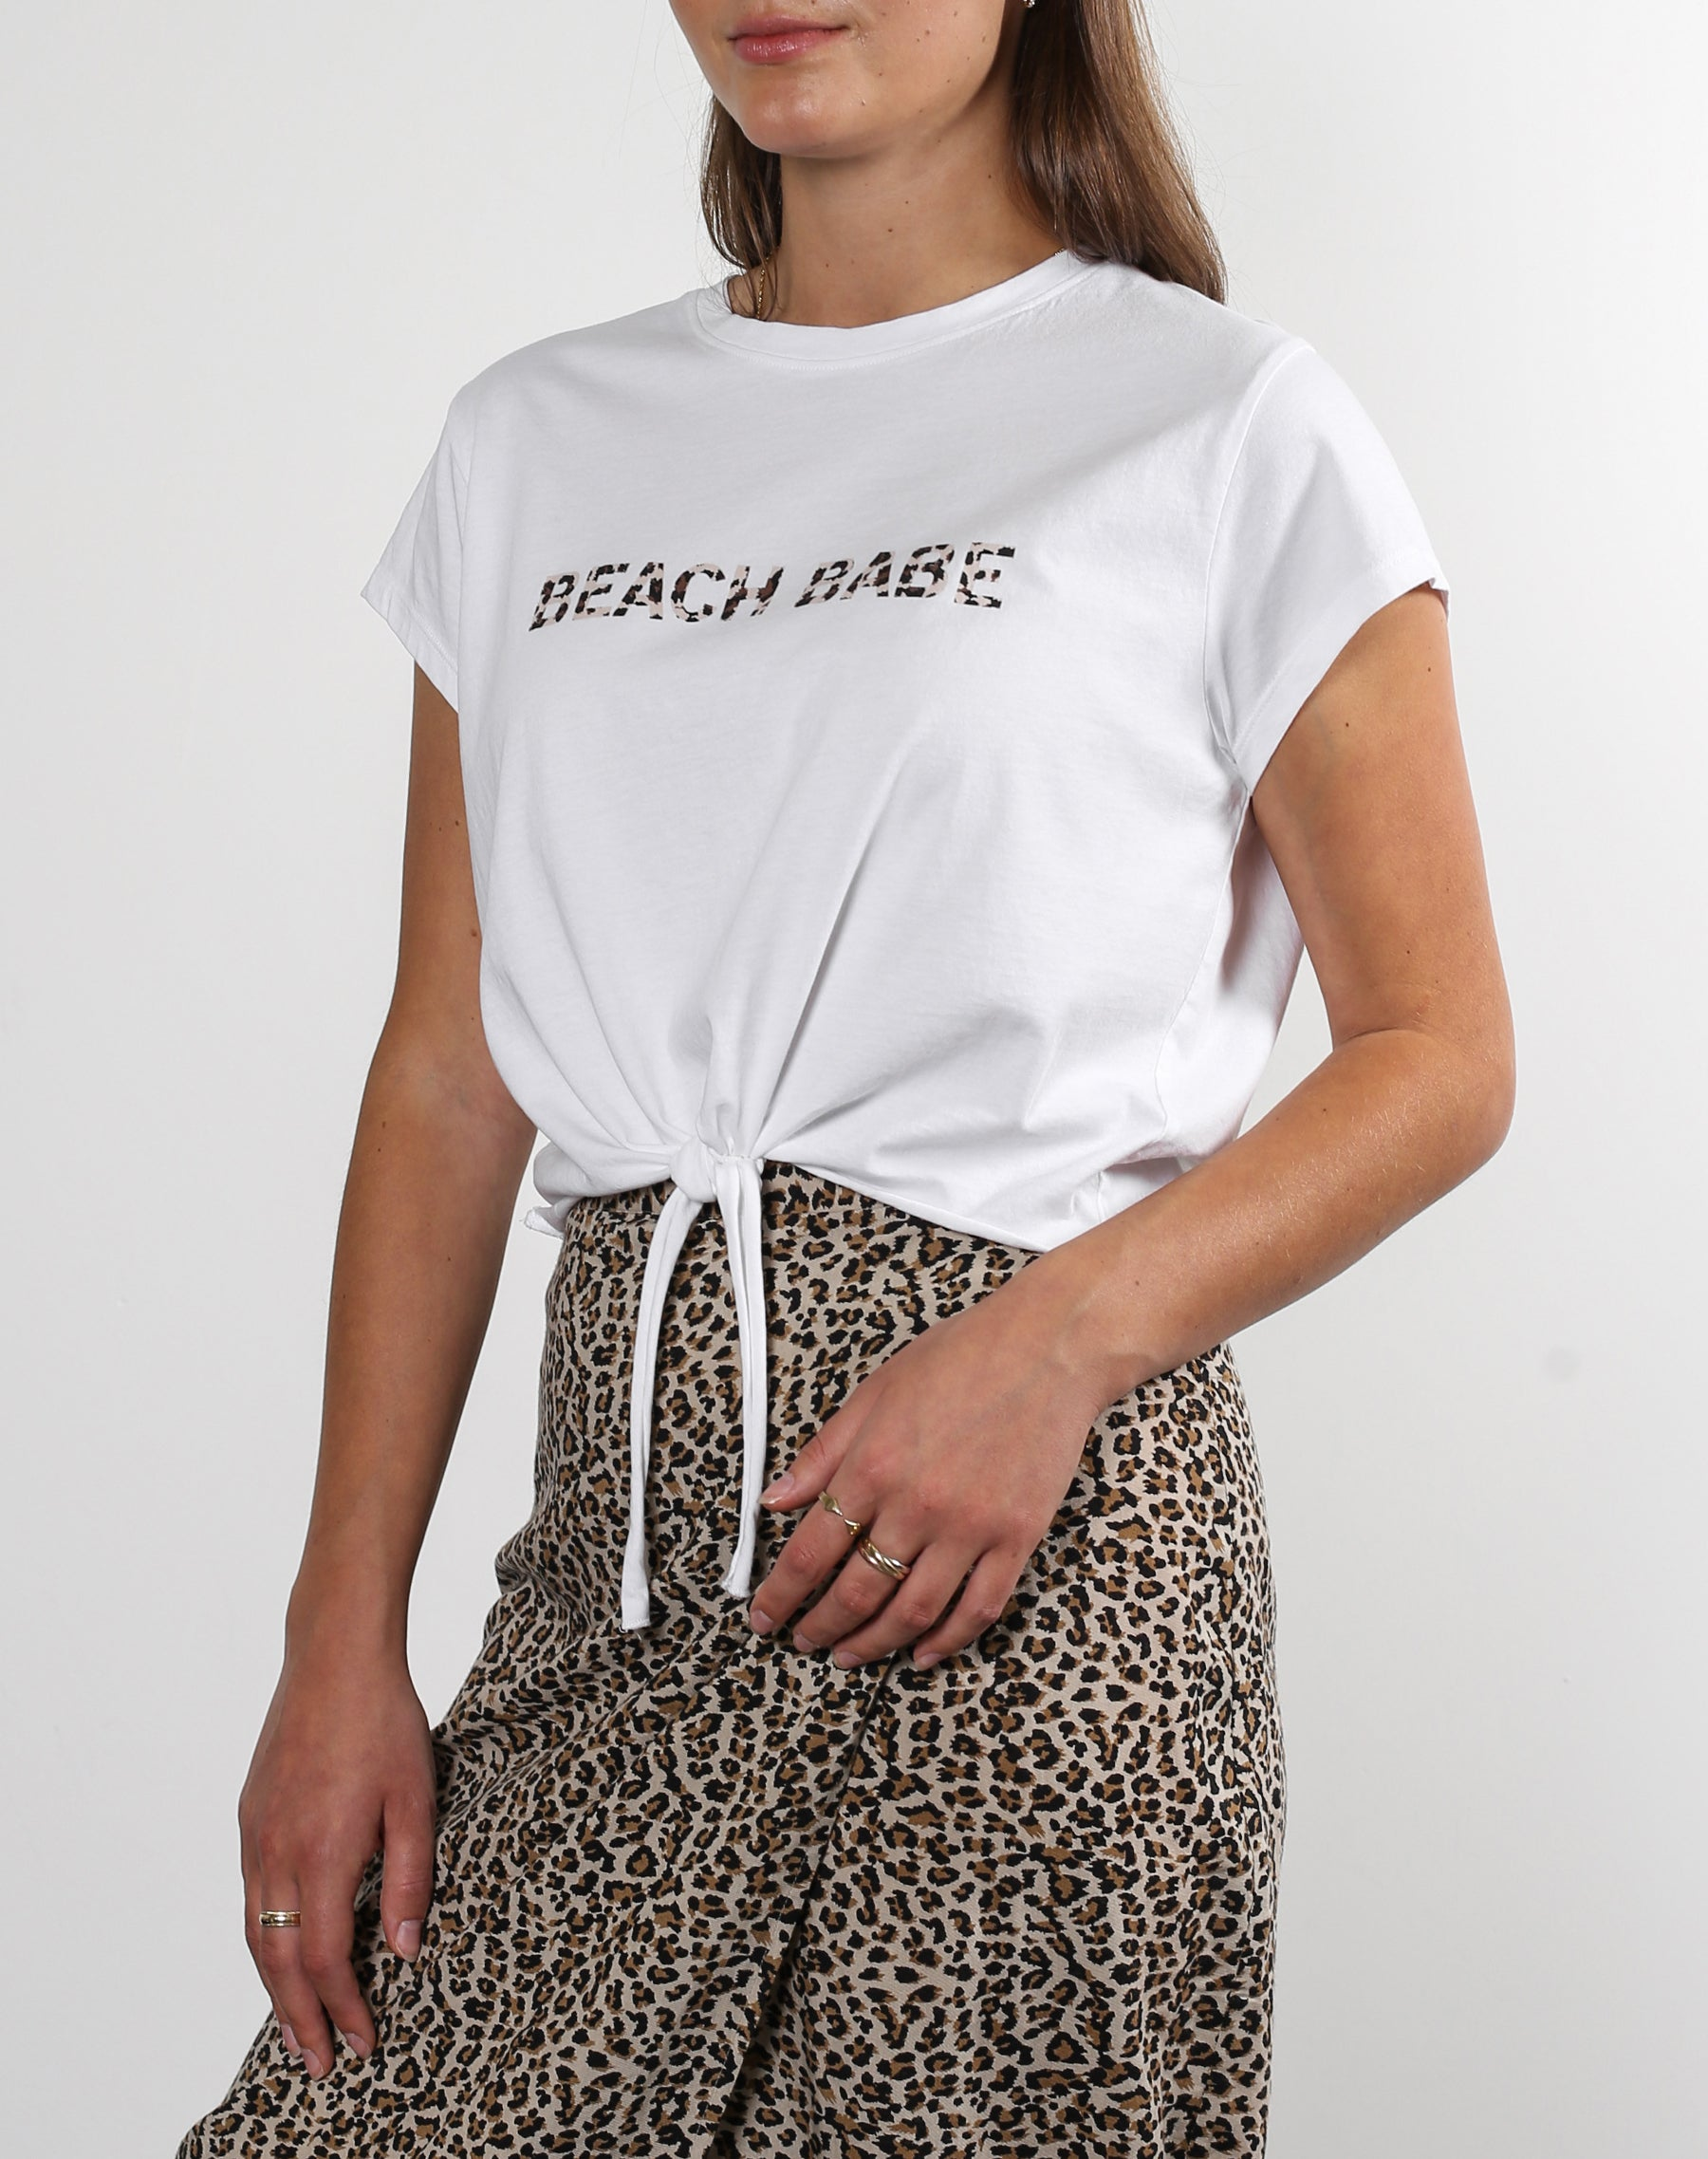 This is an Ecommerce photo of a model wearing the White Beach Babe tee from the koy restort collection from brunette the label